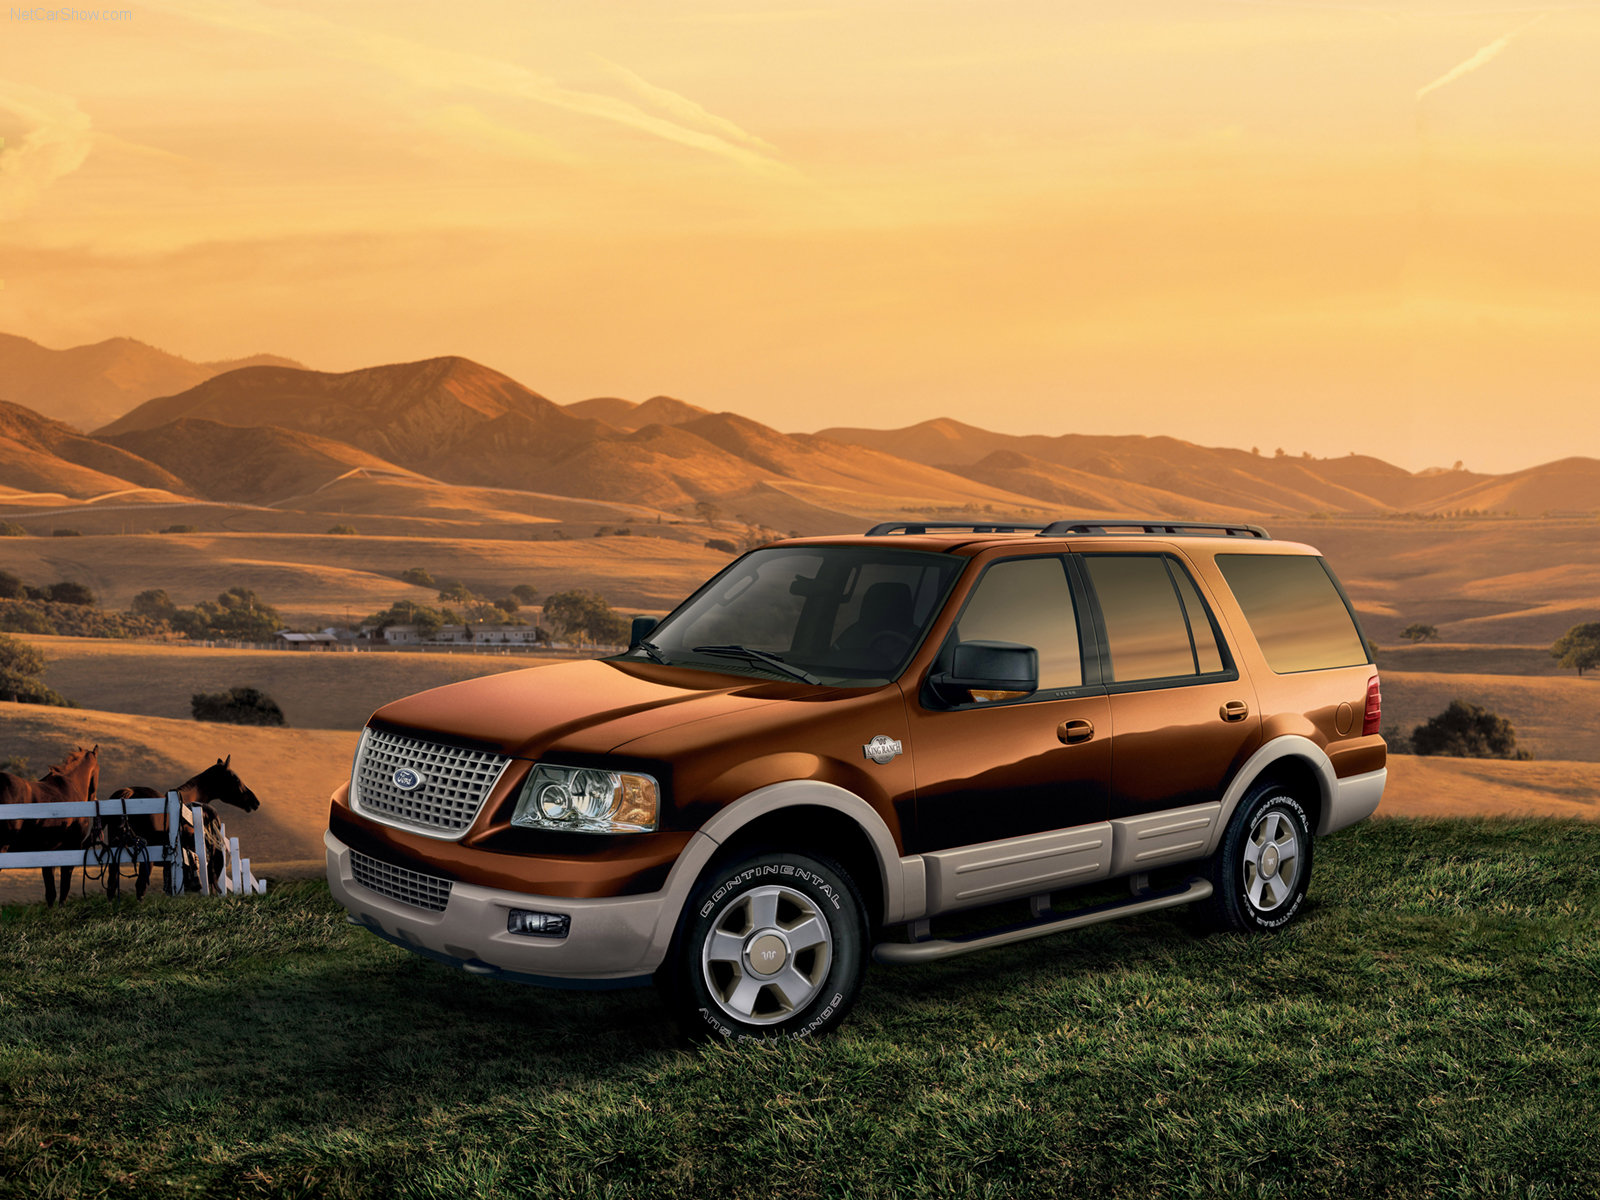 Ford Expedition photo 33260